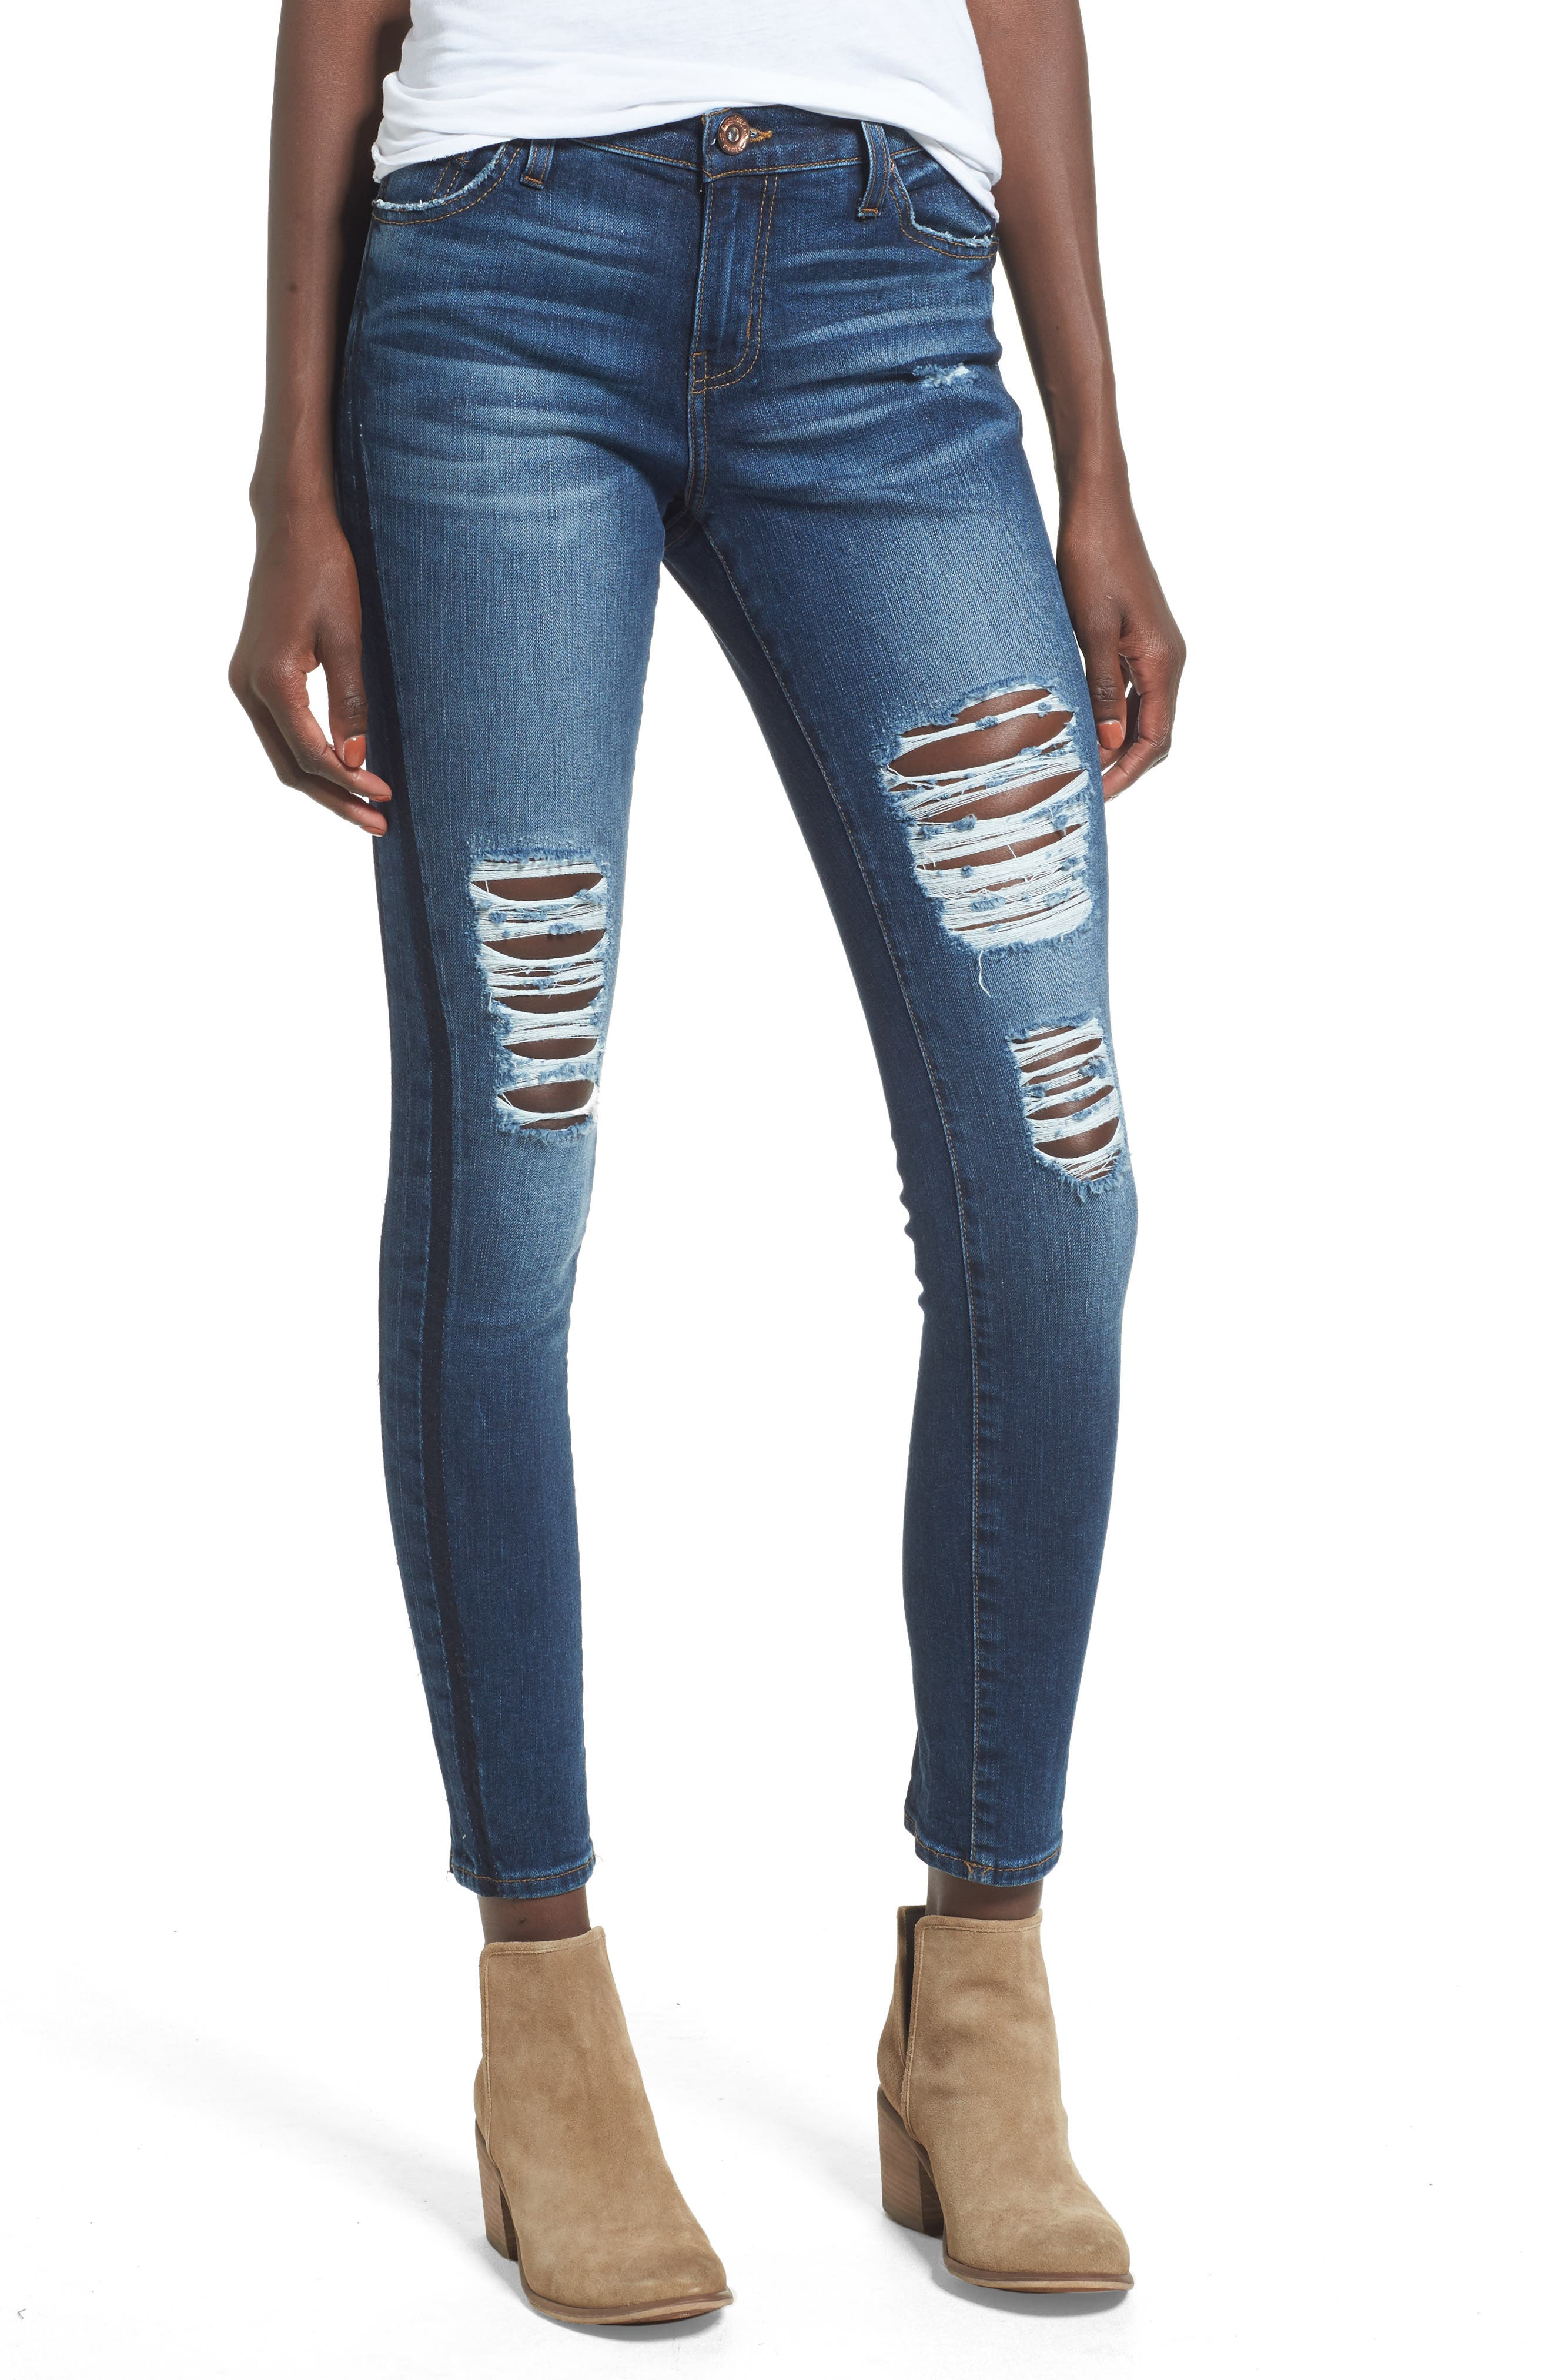 Lola Ripped Skinny Jeans,                             Main thumbnail 1, color,                             Carlsbad Fest East